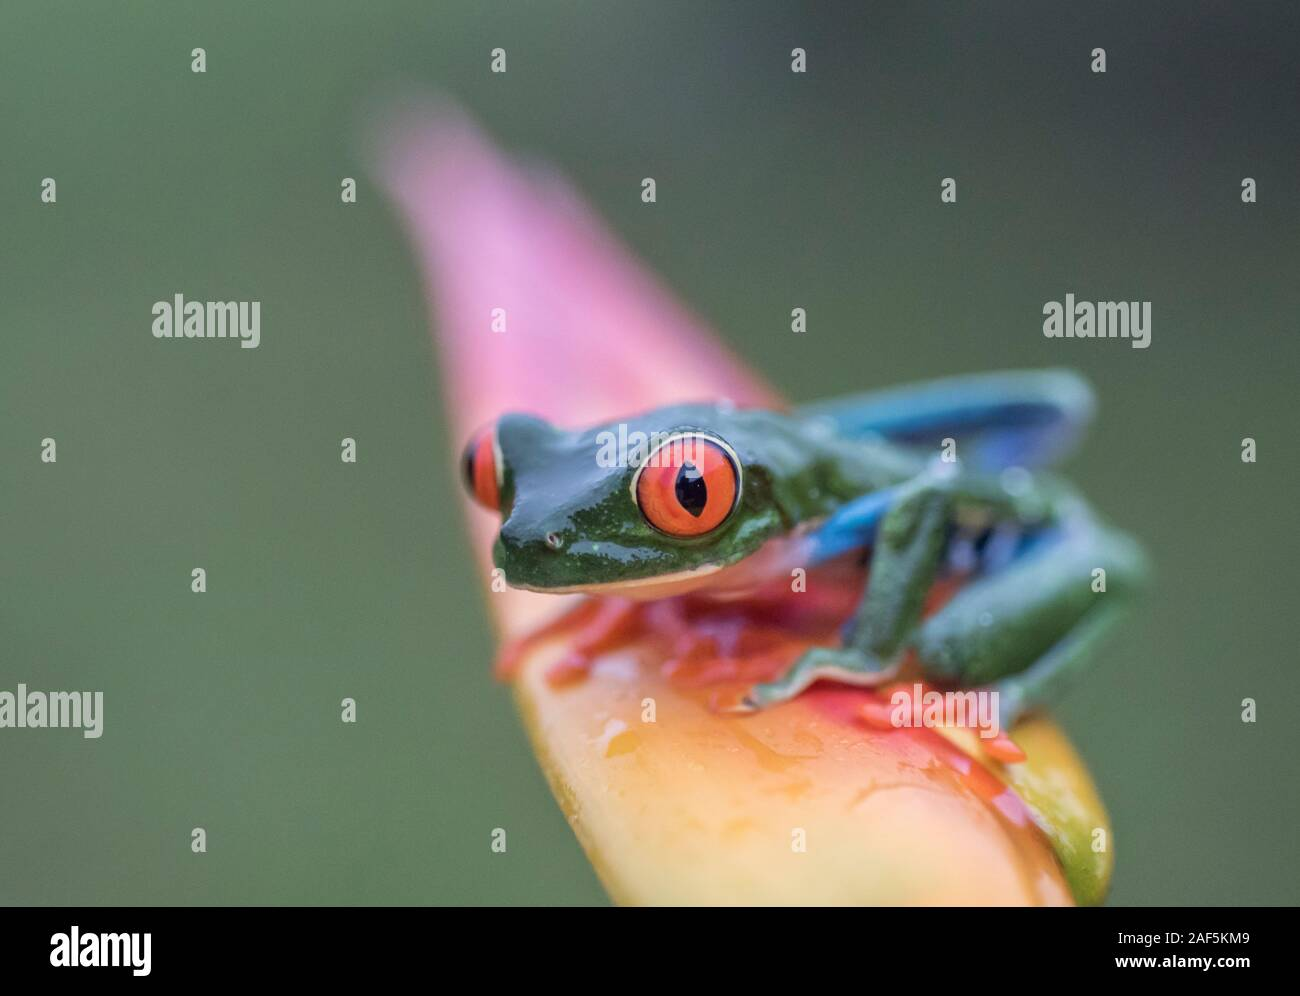 A Red-eyed tree frog in Costa Rica Stock Photo